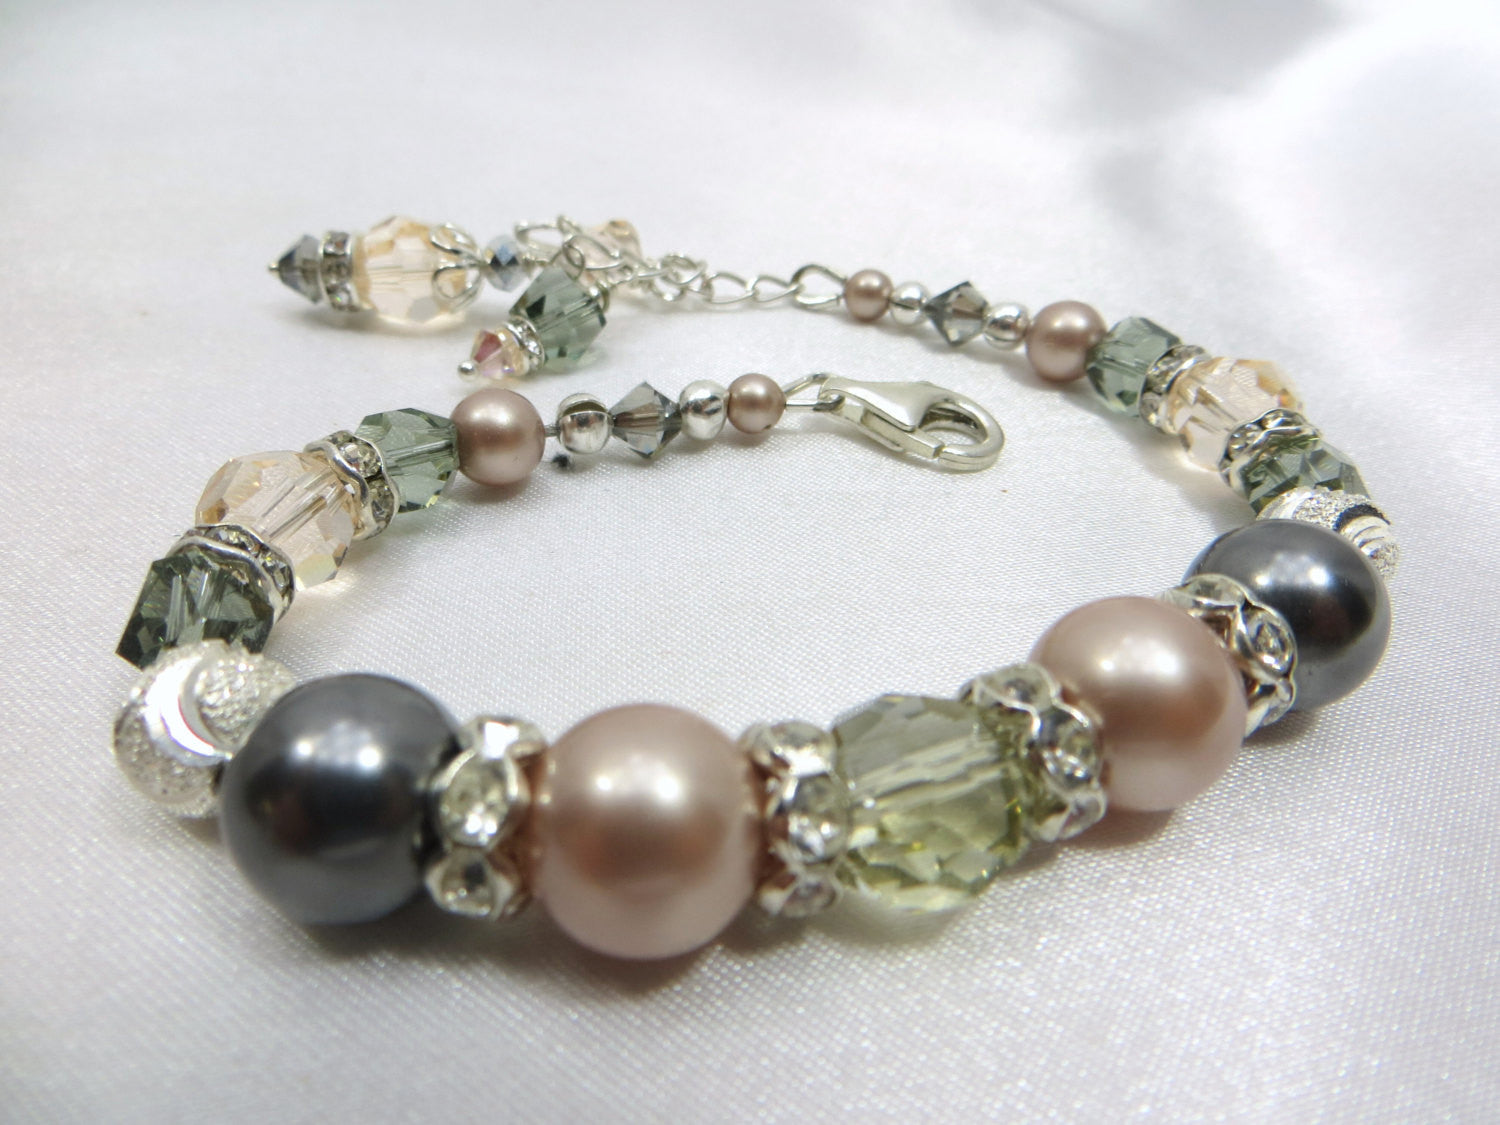 Vintage Inspired Bridal or Bridesmaid Swarovski Bracelet in Pink Champagne & Gray Pearls with sterling silver dragonfly charm - Odyssey Creations